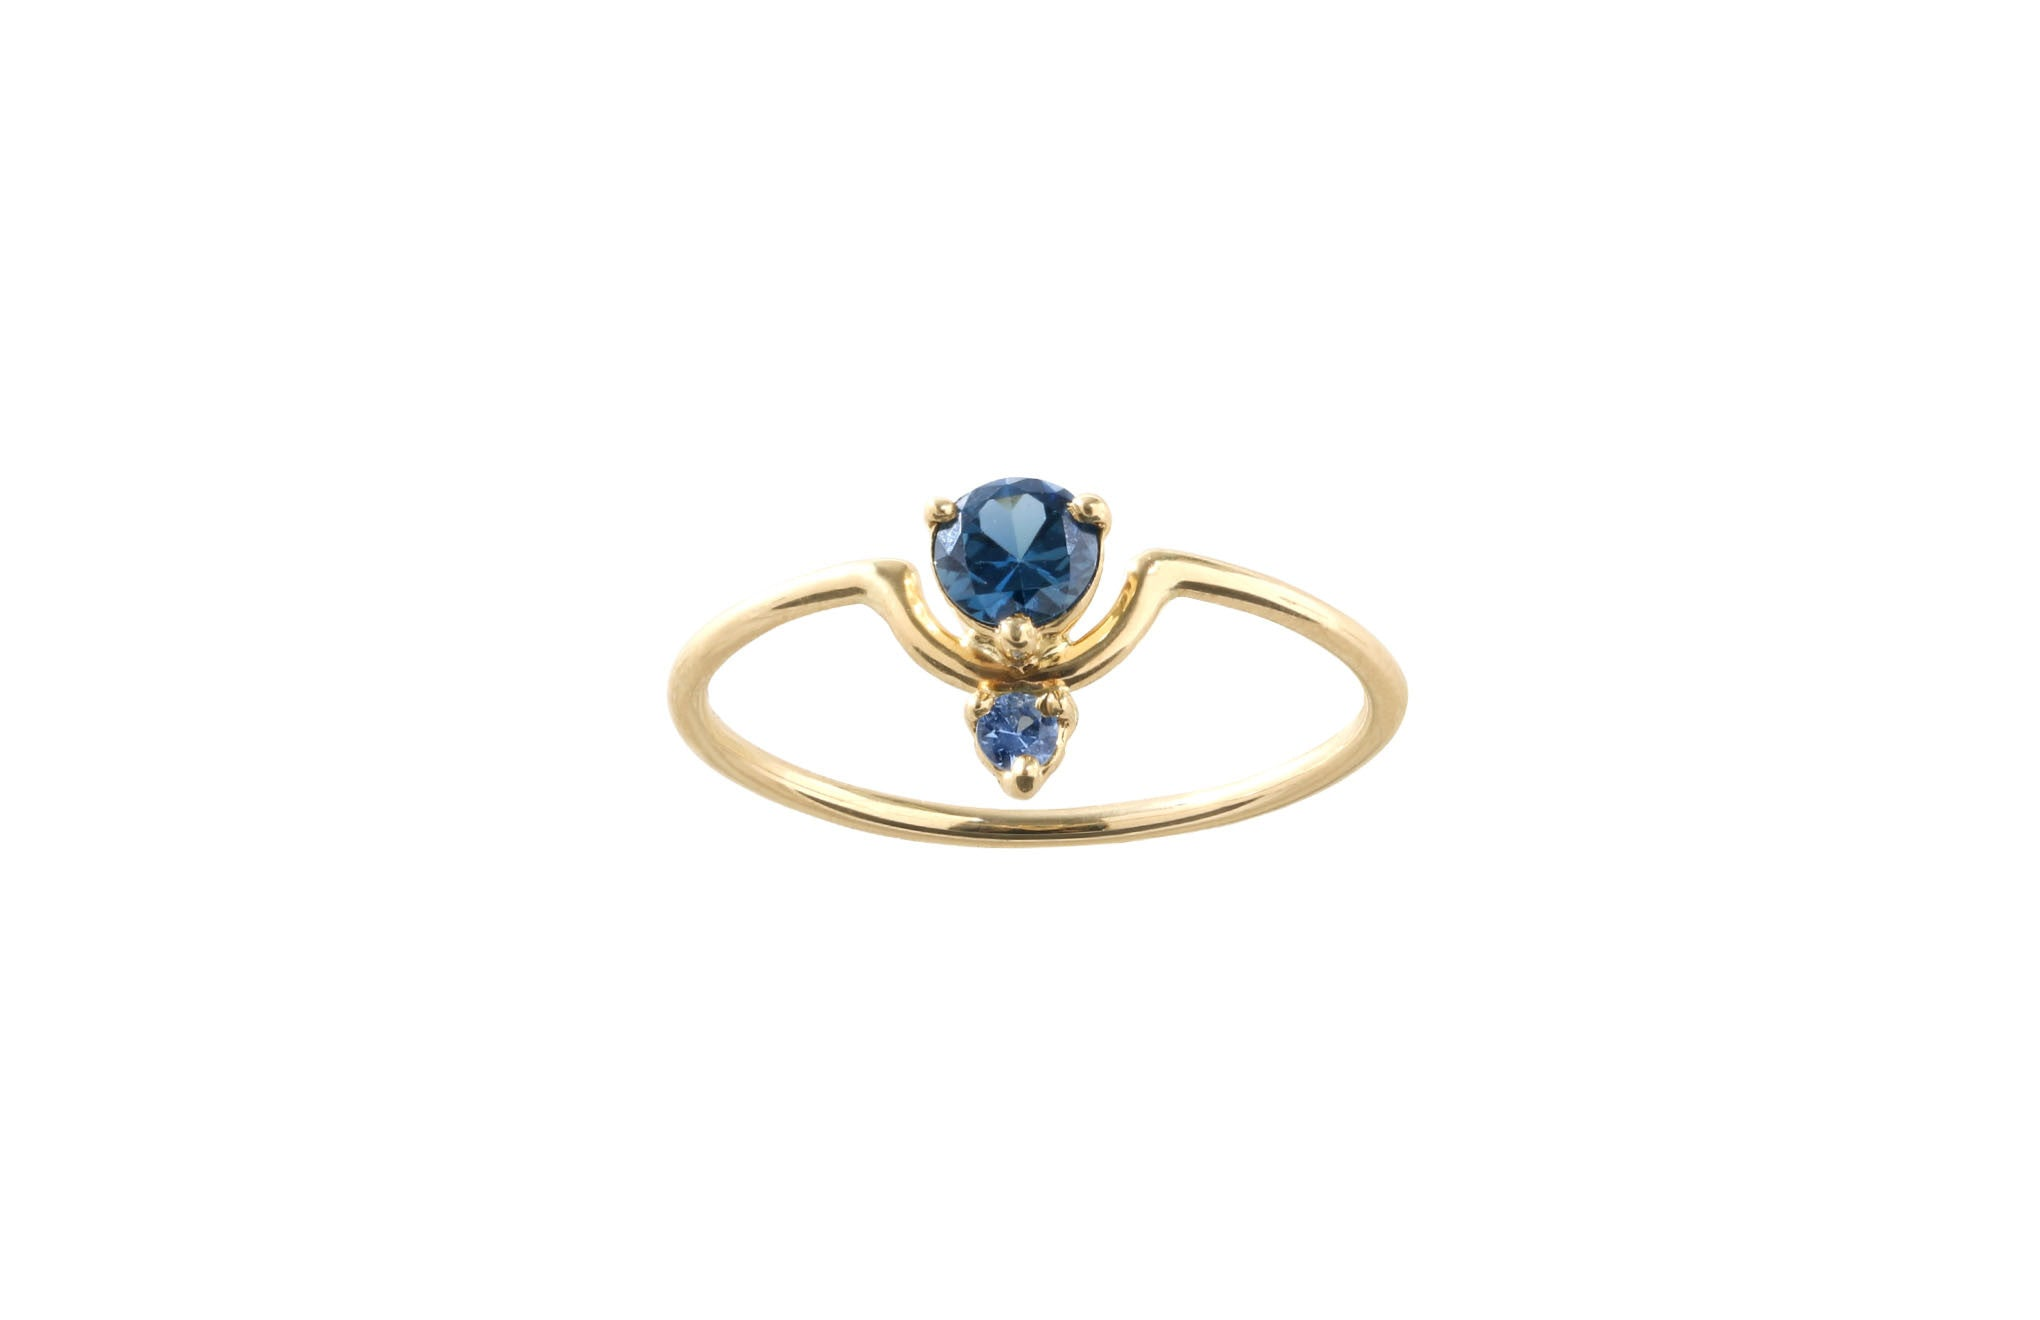 blue emitter with light render aqua sapphire round ctw wedding white stone accents ring metal gold in octave shop band triple floor bezel